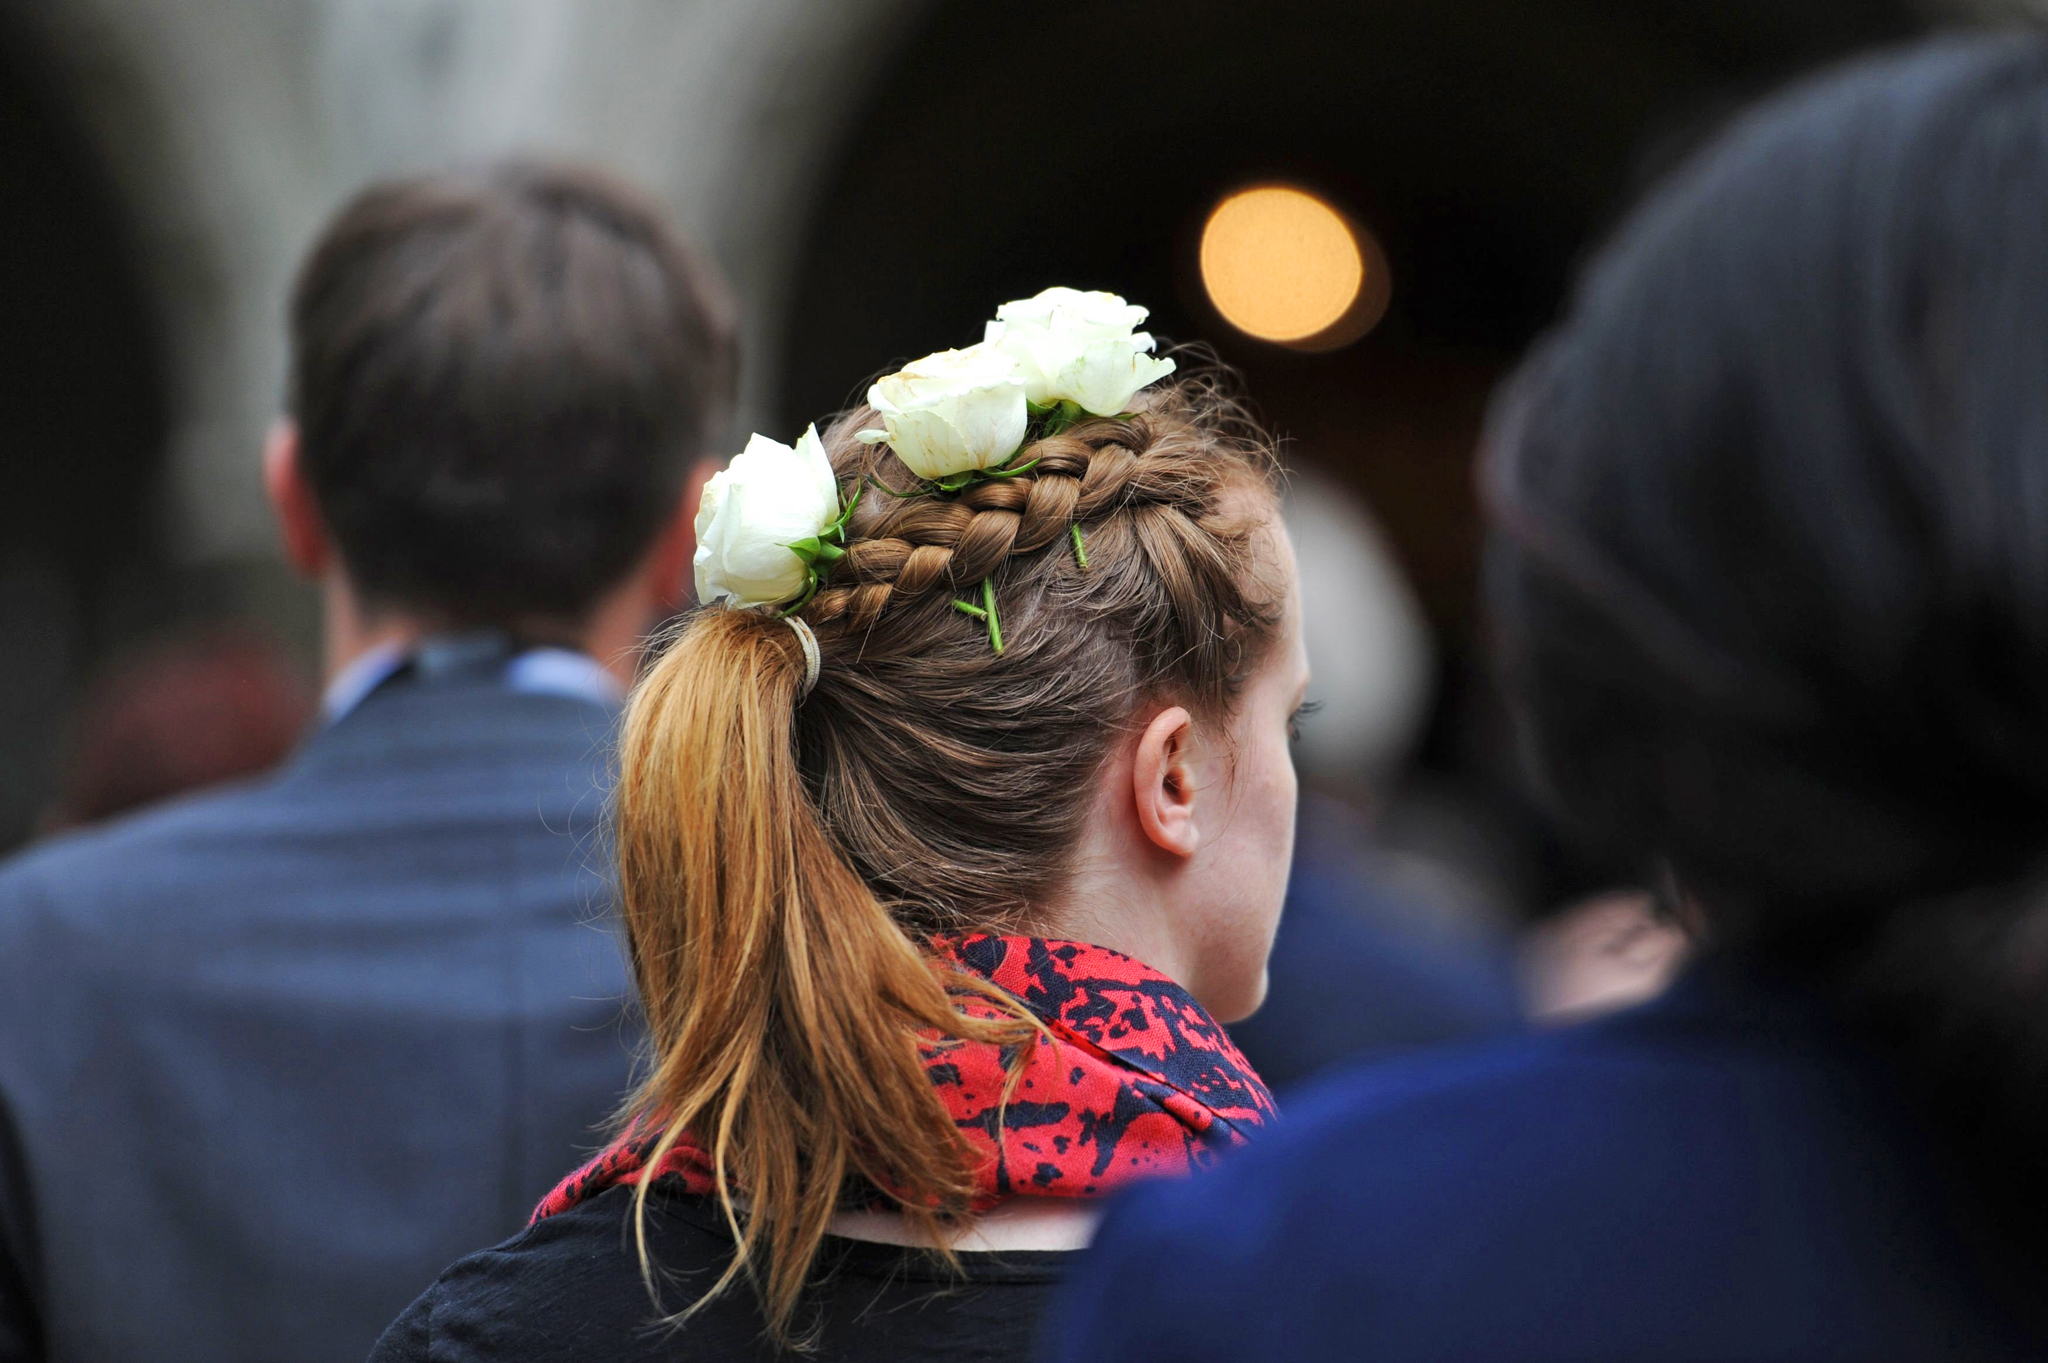 An MP wears white roses in her hair as she arrives with other MPs at St Margaret's Church, London, for a service of prayer and remembrance to commemorate Jo Cox MP. PRESS ASSOCIATION Photo. Picture date: Monday June 20, 2016. Members of the UK Parliament attended the service to commemorate Labour MP Jo Cox. Addresses were given by the Speaker's Chaplain, the Reverend Rose Hudson-Wilkin with readings by the Speaker, the Honourable John Bercow and Glenys Kinnock, Baroness Kinnock of Holyhead. See PA story POLITICS MP Service. Photo credit should read: Nick Ansell/PA Wire